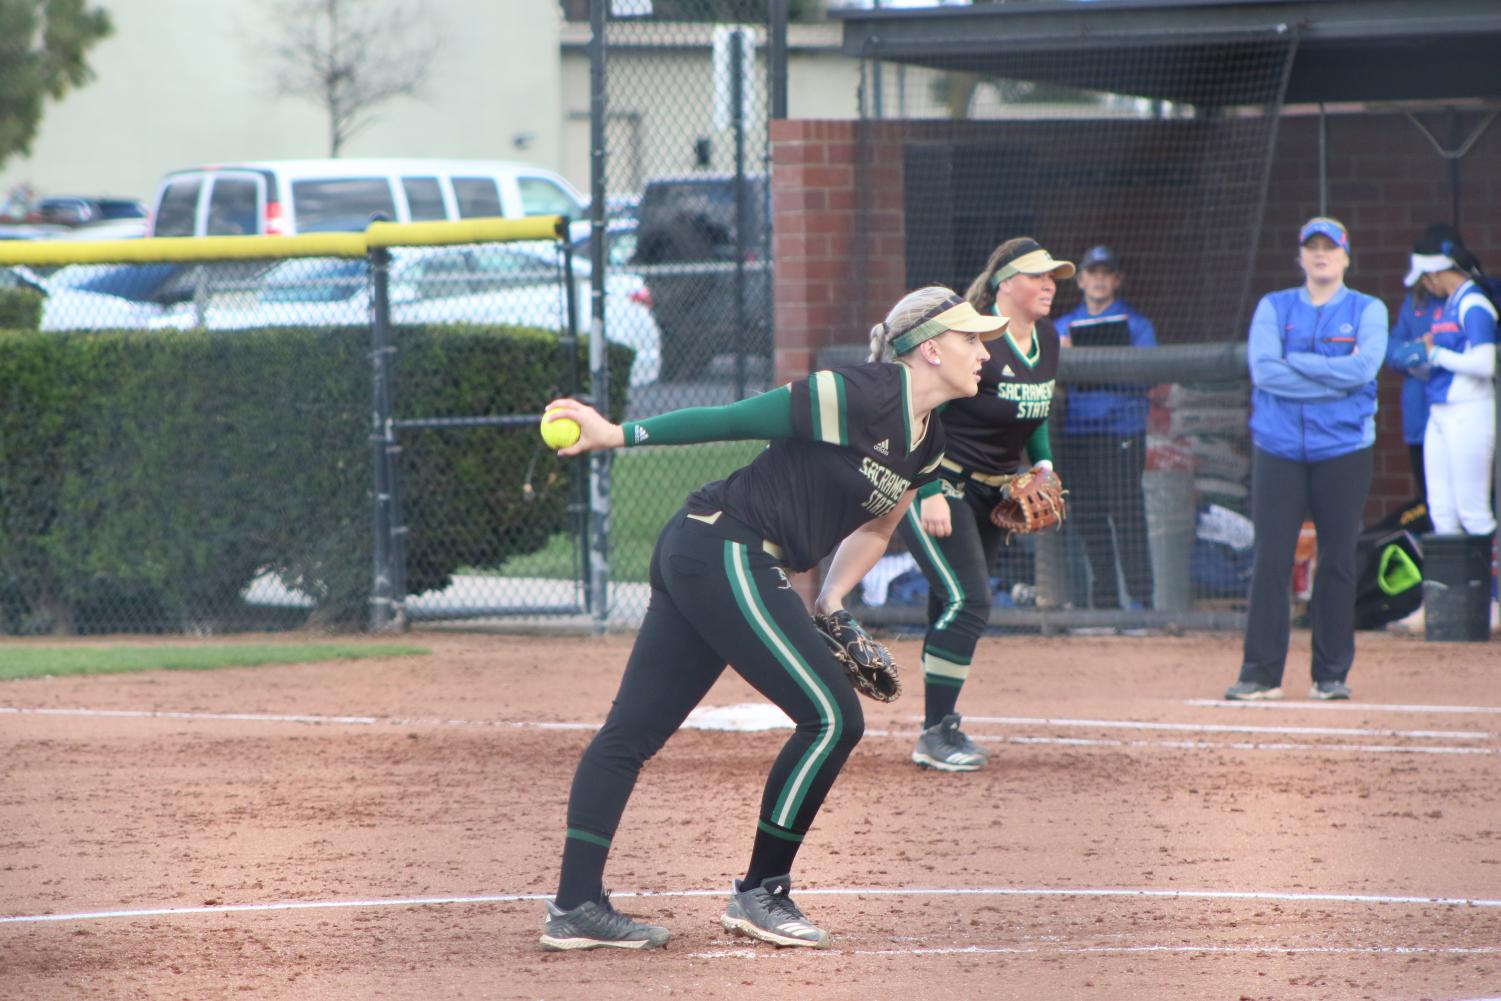 Sac State senior right-hander Savanna Corr pitches in a 2-5 loss against Boise State on Friday at Bill Simoni Field. The Hornets had an early lead, but lost energy late in the game, according to players.